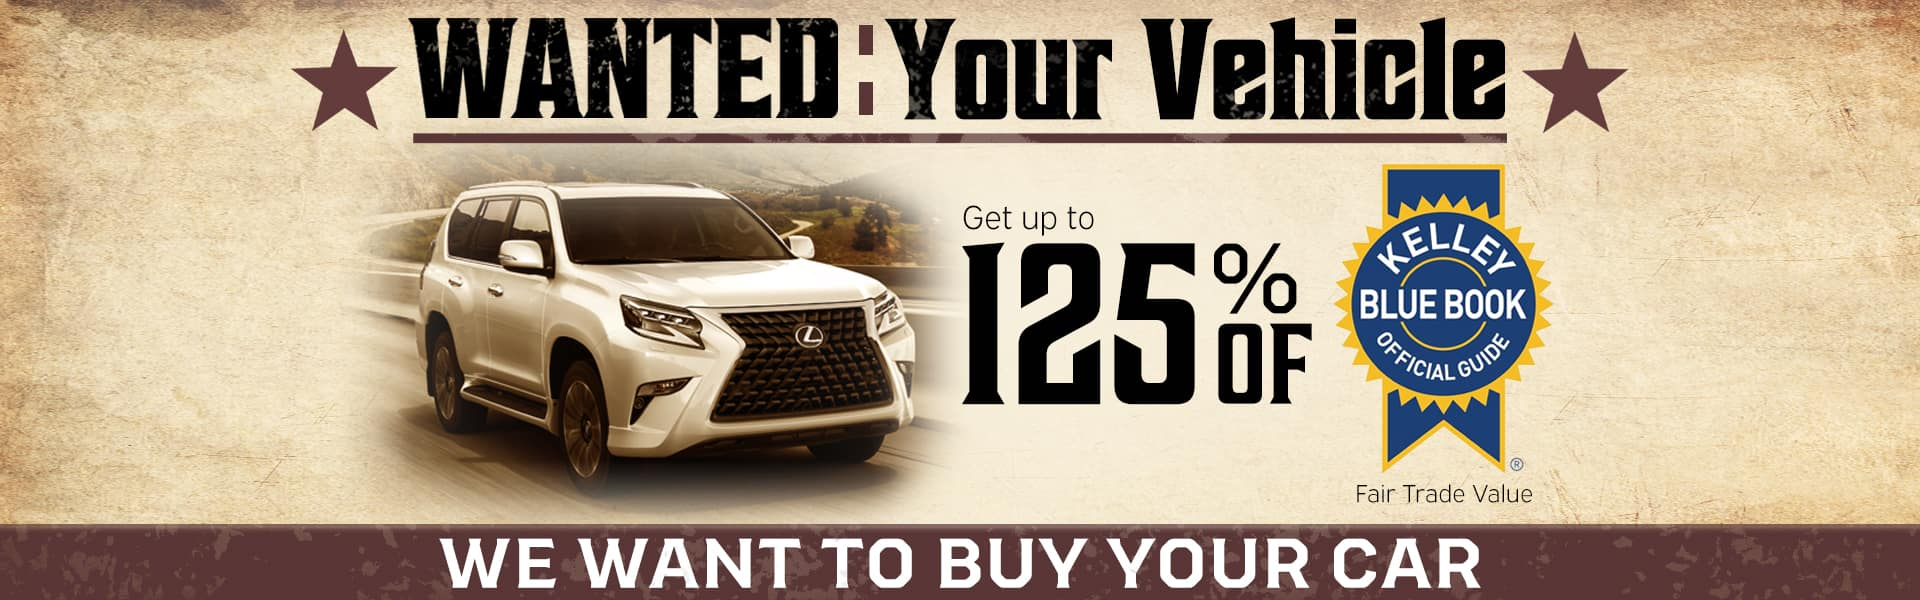 Sell us your vehicle at Thompson Lexus Willow Grove